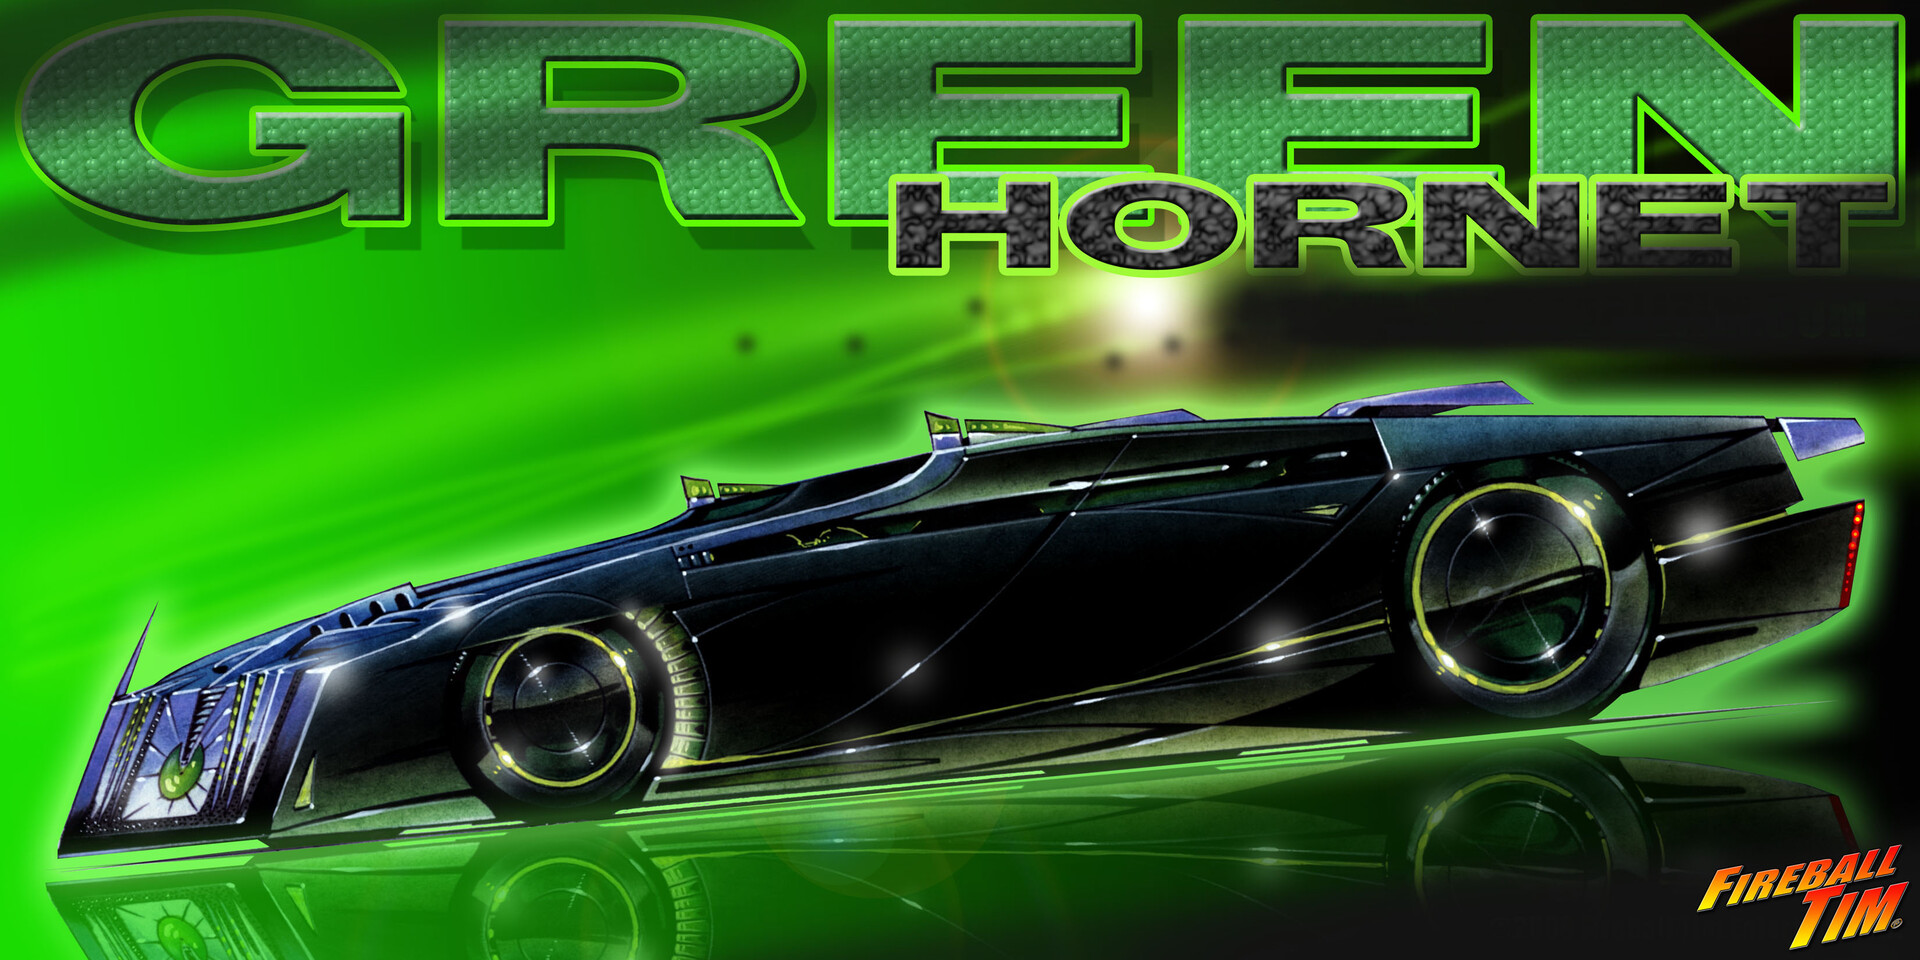 Early GREEN HORNET BLACK BEAUTY CONCEPT